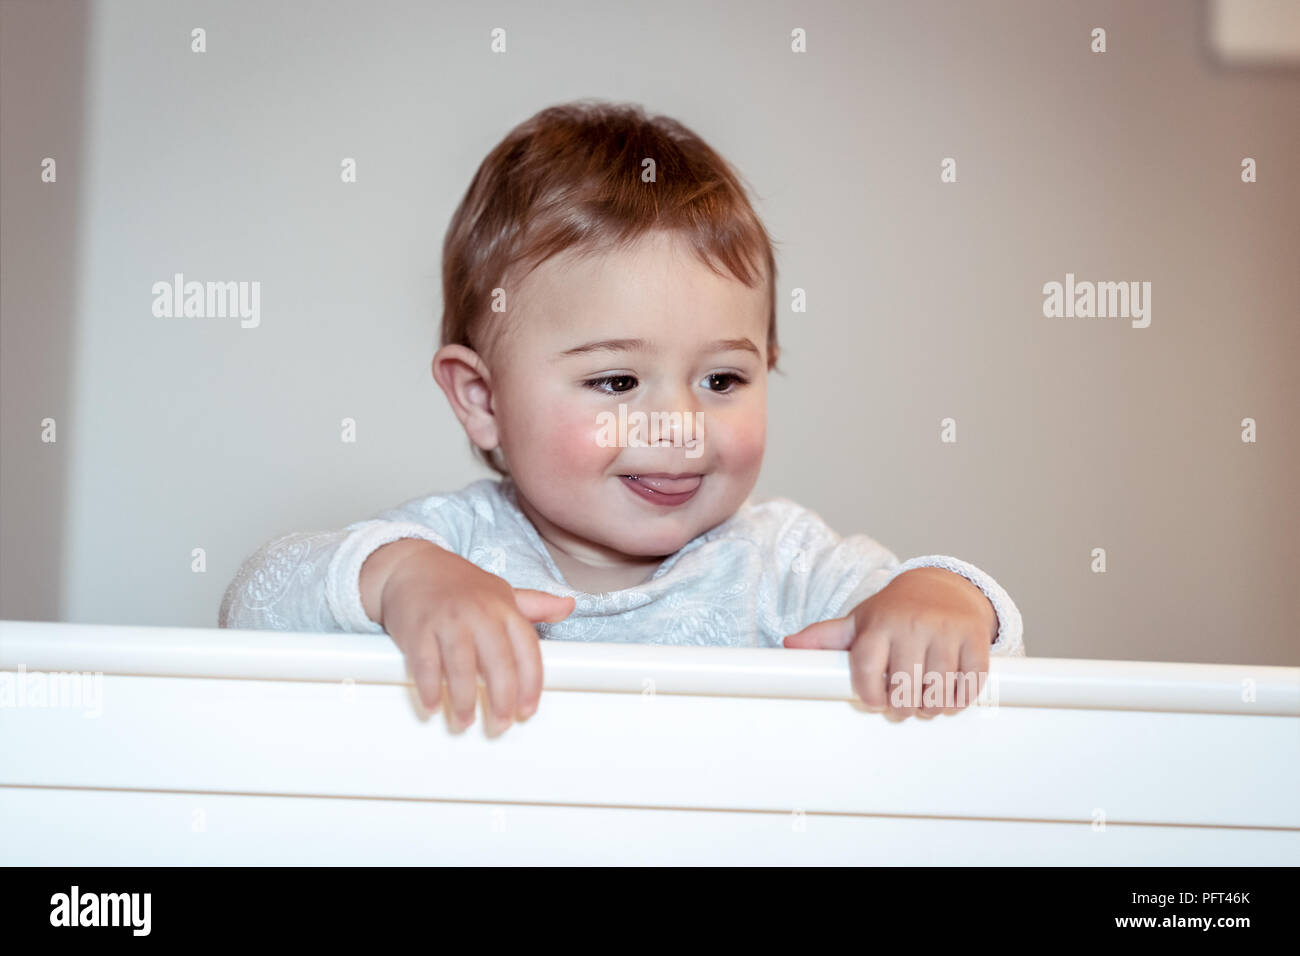 Sweet baby boy standing in his nice white cot, little child in sleepwear in the kidsroom at home, preparing to nap, happy carefree childhood - Stock Image